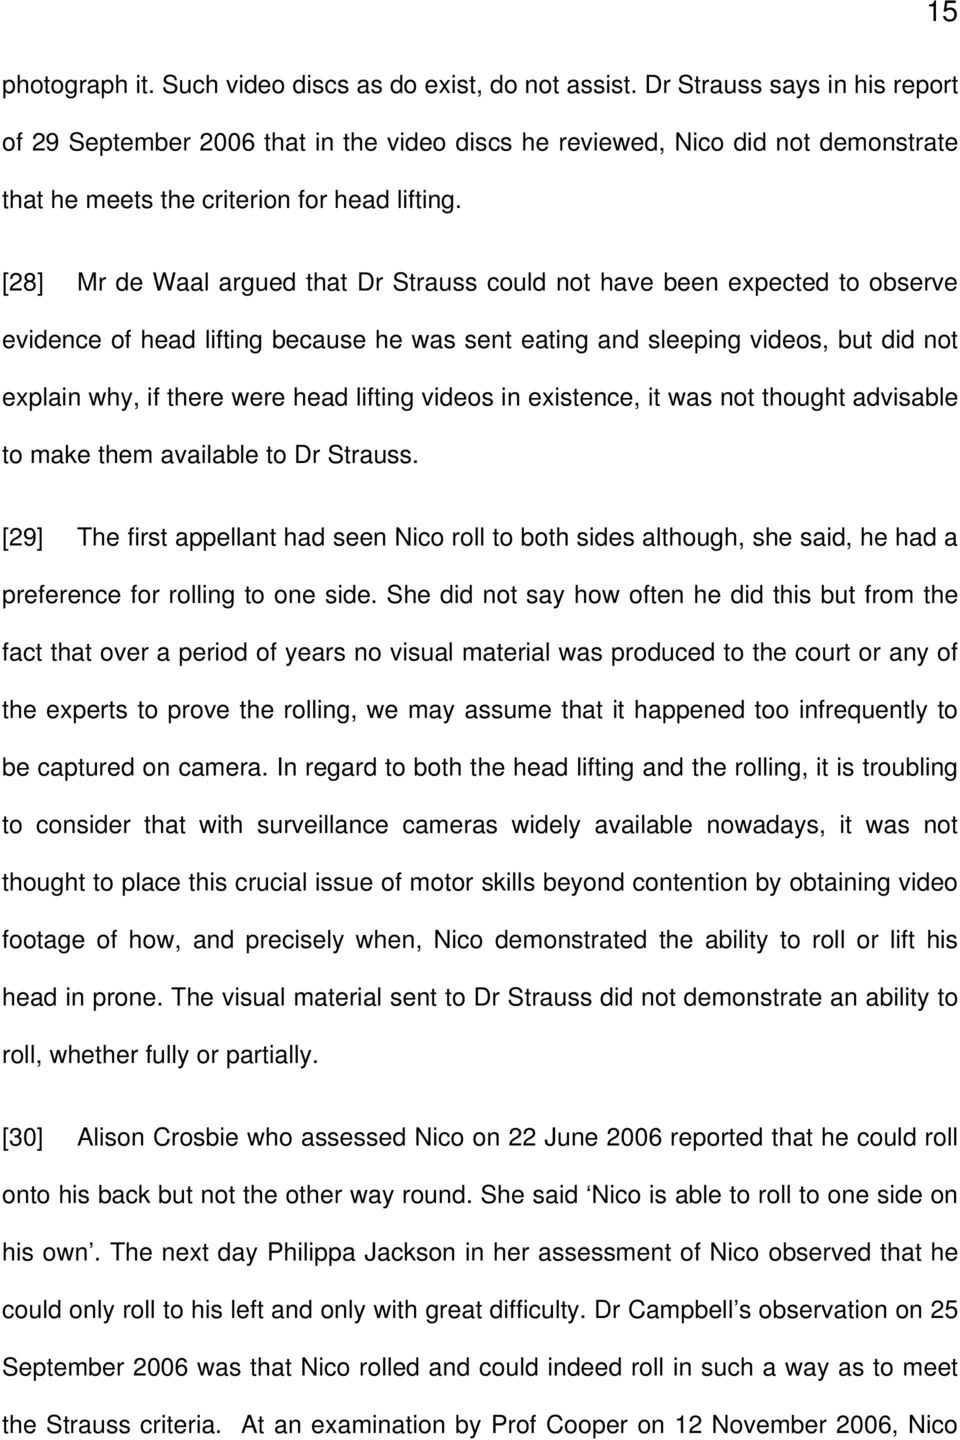 [28] Mr de Waal argued that Dr Strauss could not have been expected to observe evidence of head lifting because he was sent eating and sleeping videos, but did not explain why, if there were head